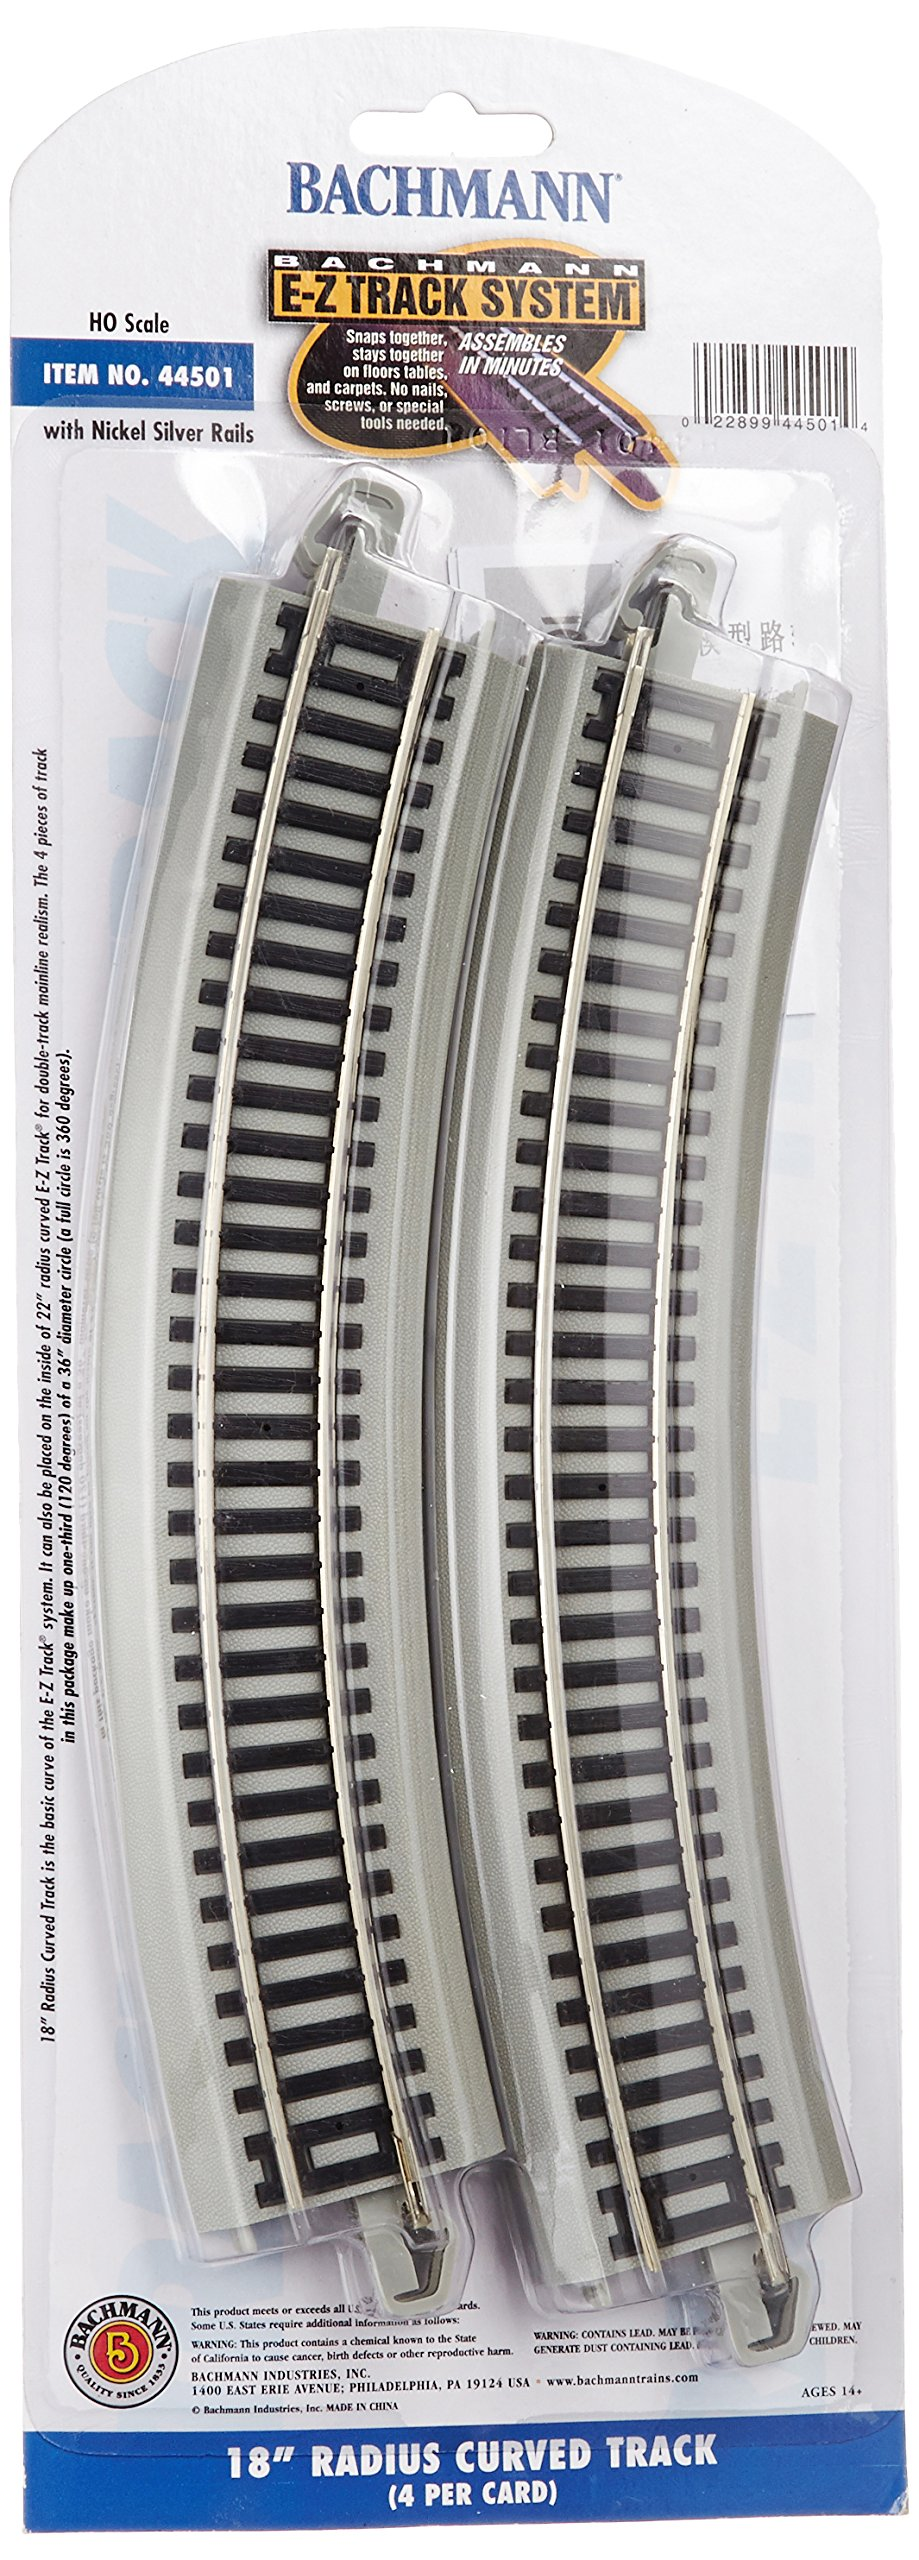 Bachmann Trains Snap-Fit E-Z Track 18'' Radius Curved Track (4/card)